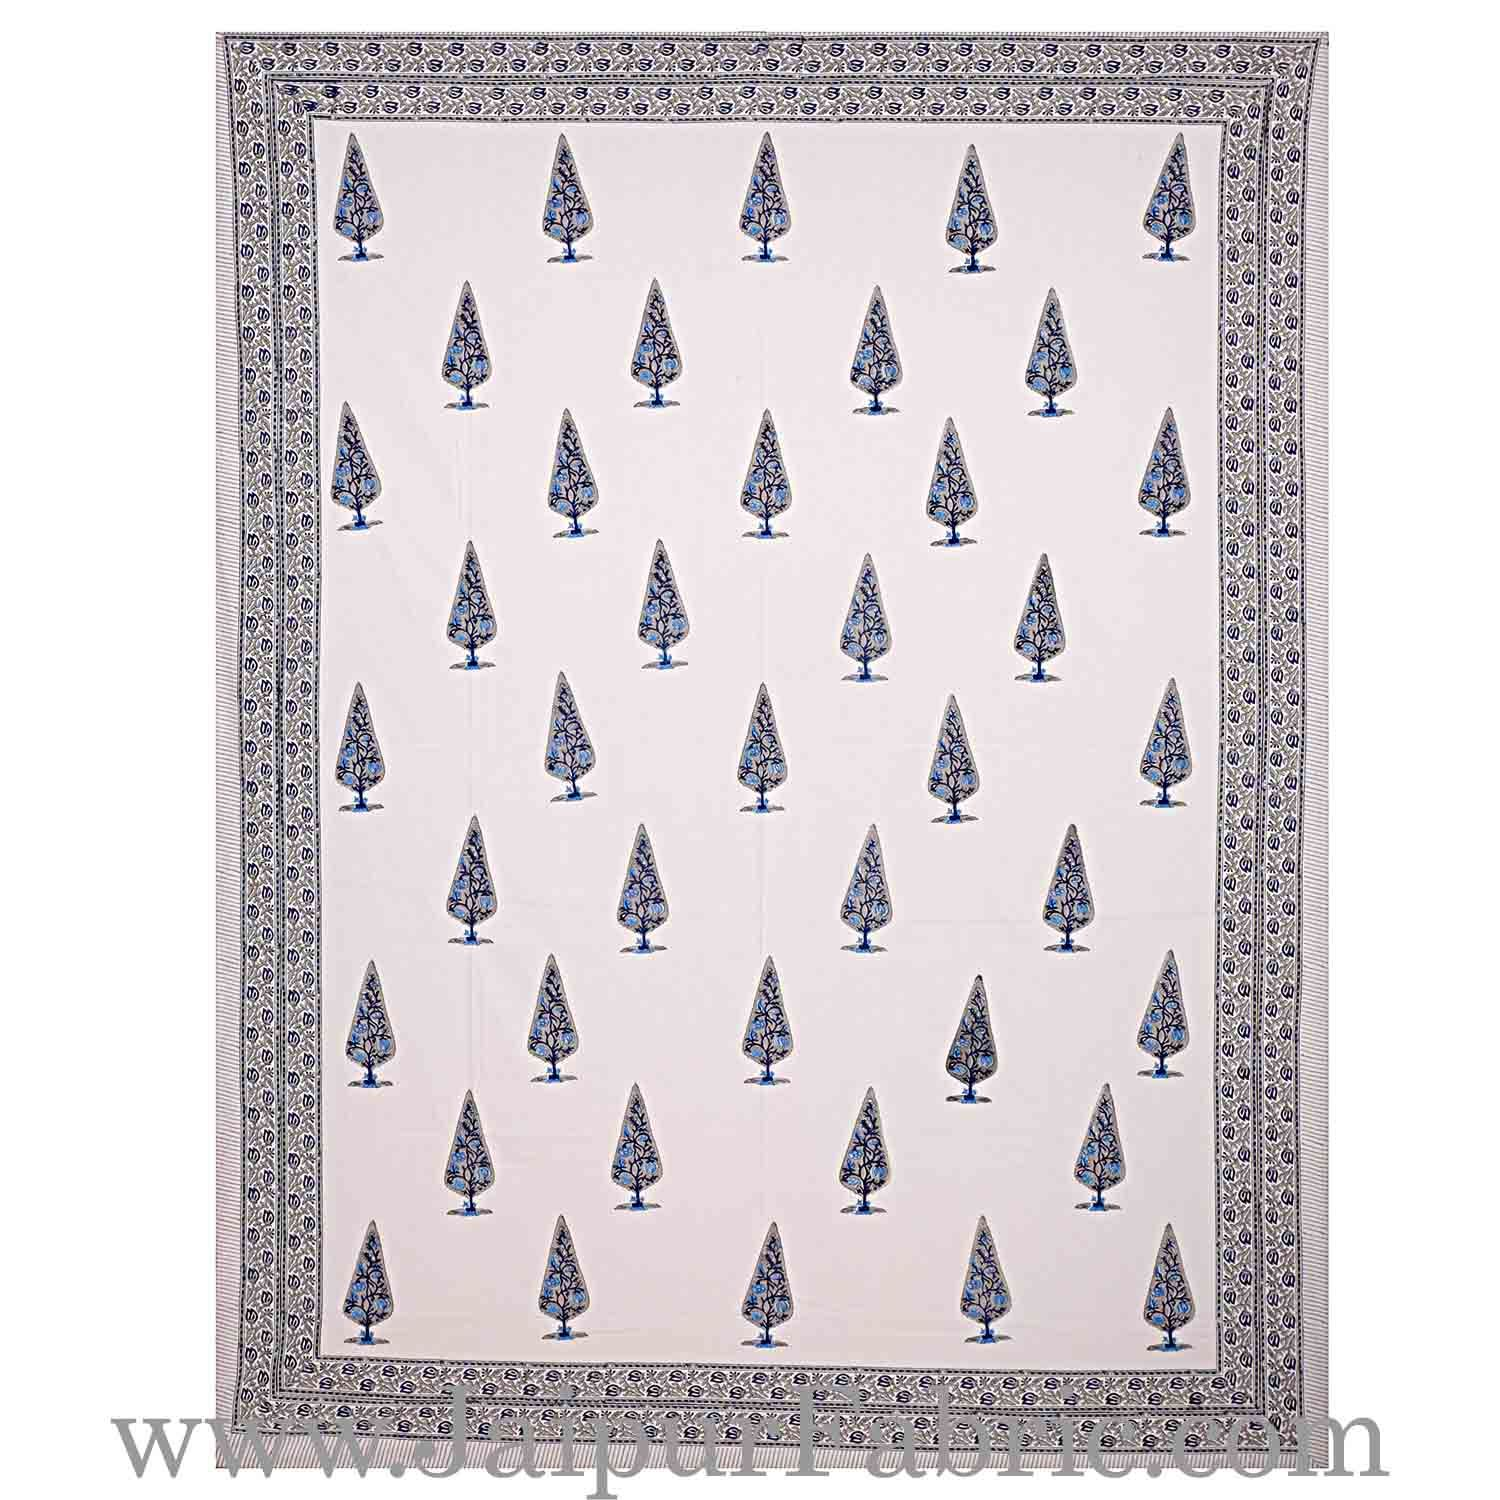 Double Bed Sheet White Base With Grey Kadi Print Multi Tree  Print Super Fine Cotton